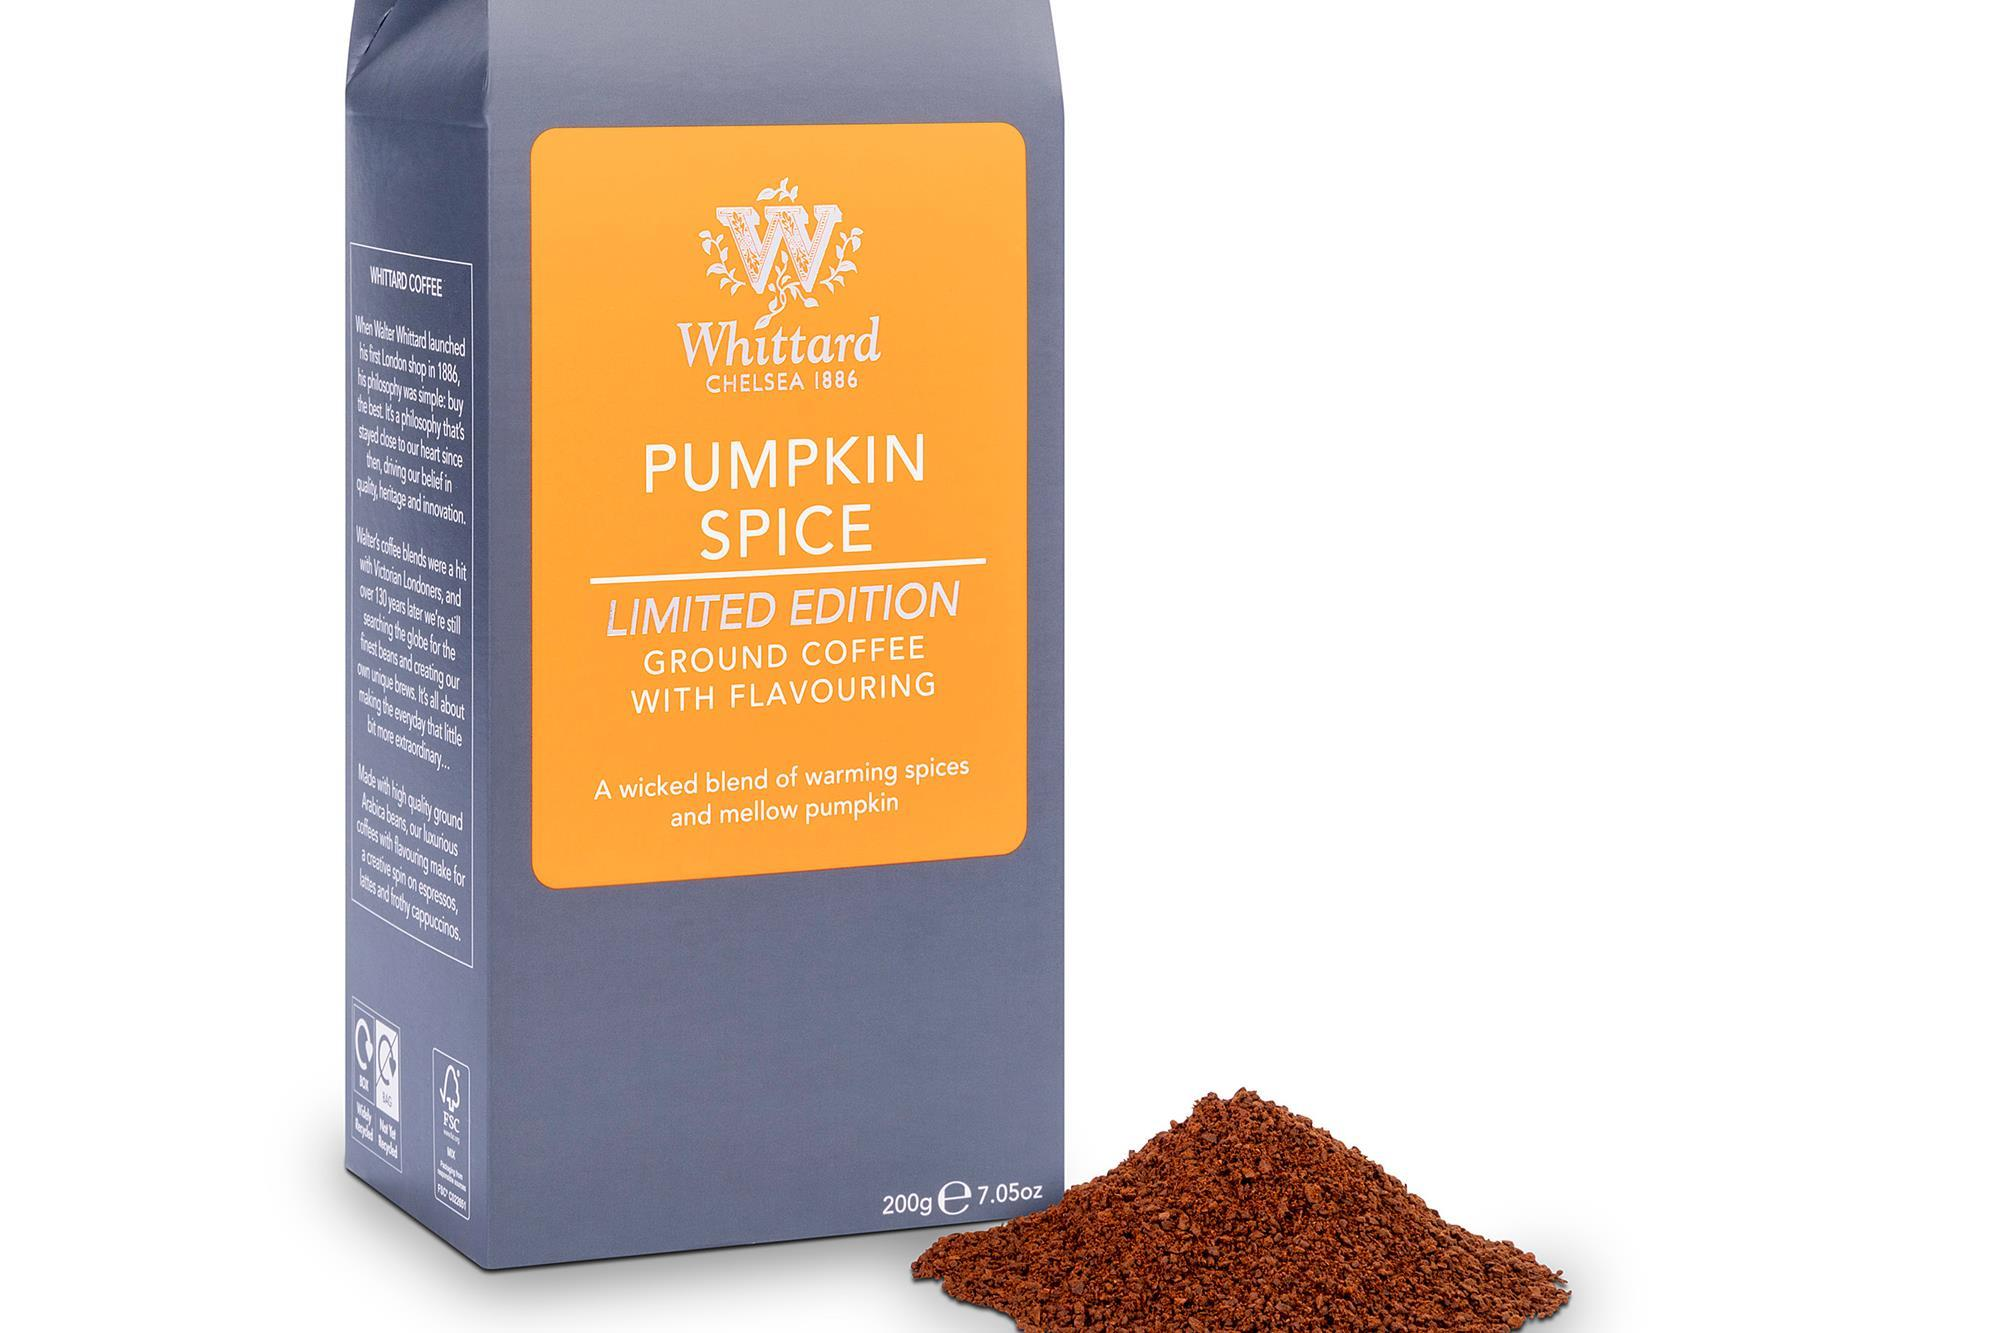 Five Pumpkin Spice Products Hitting Shelves This Autumn